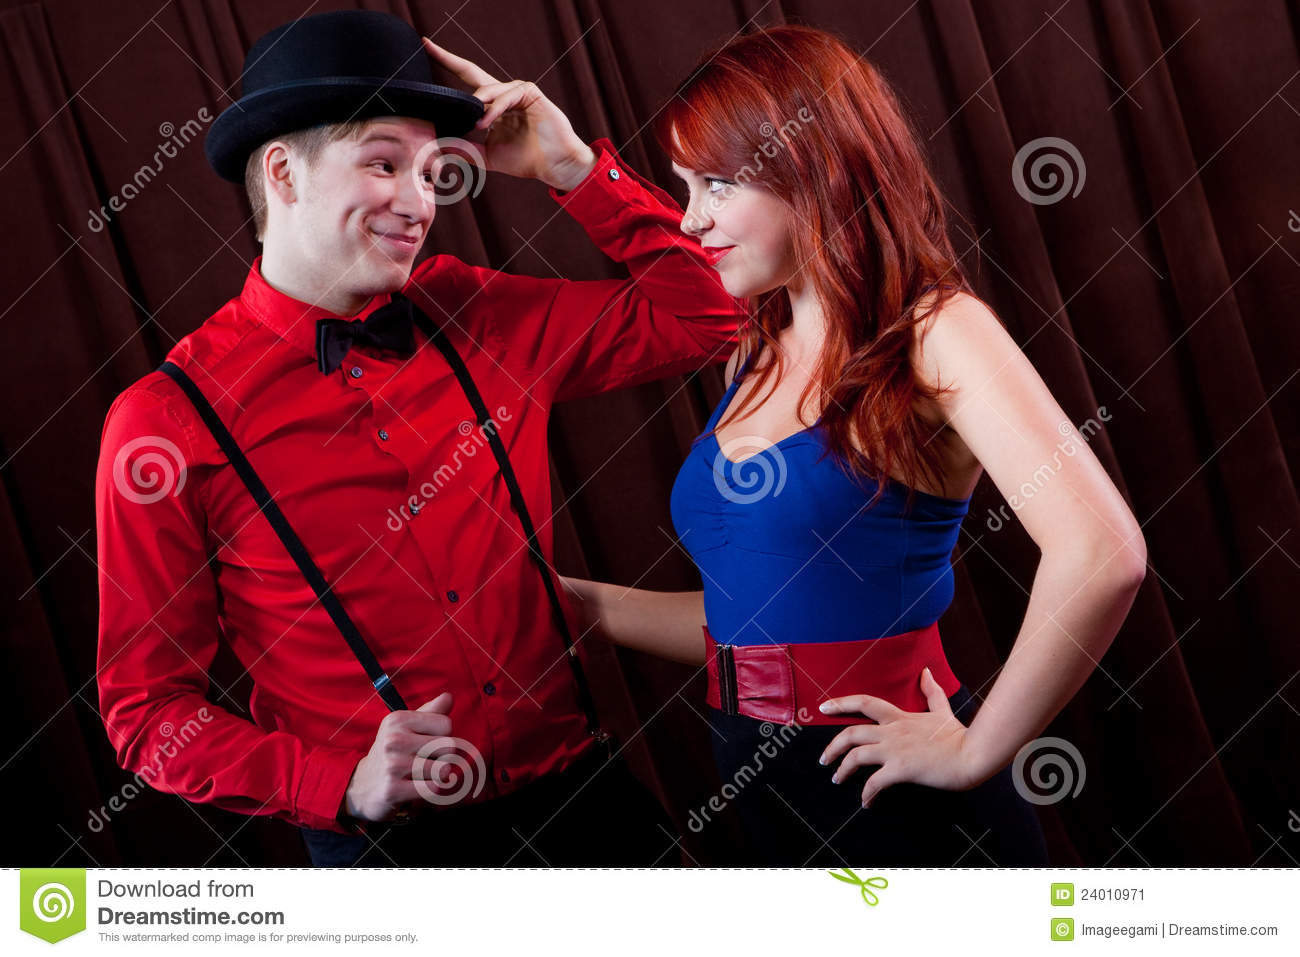 Rockabilly Couple Stock Image - Image: 24010971